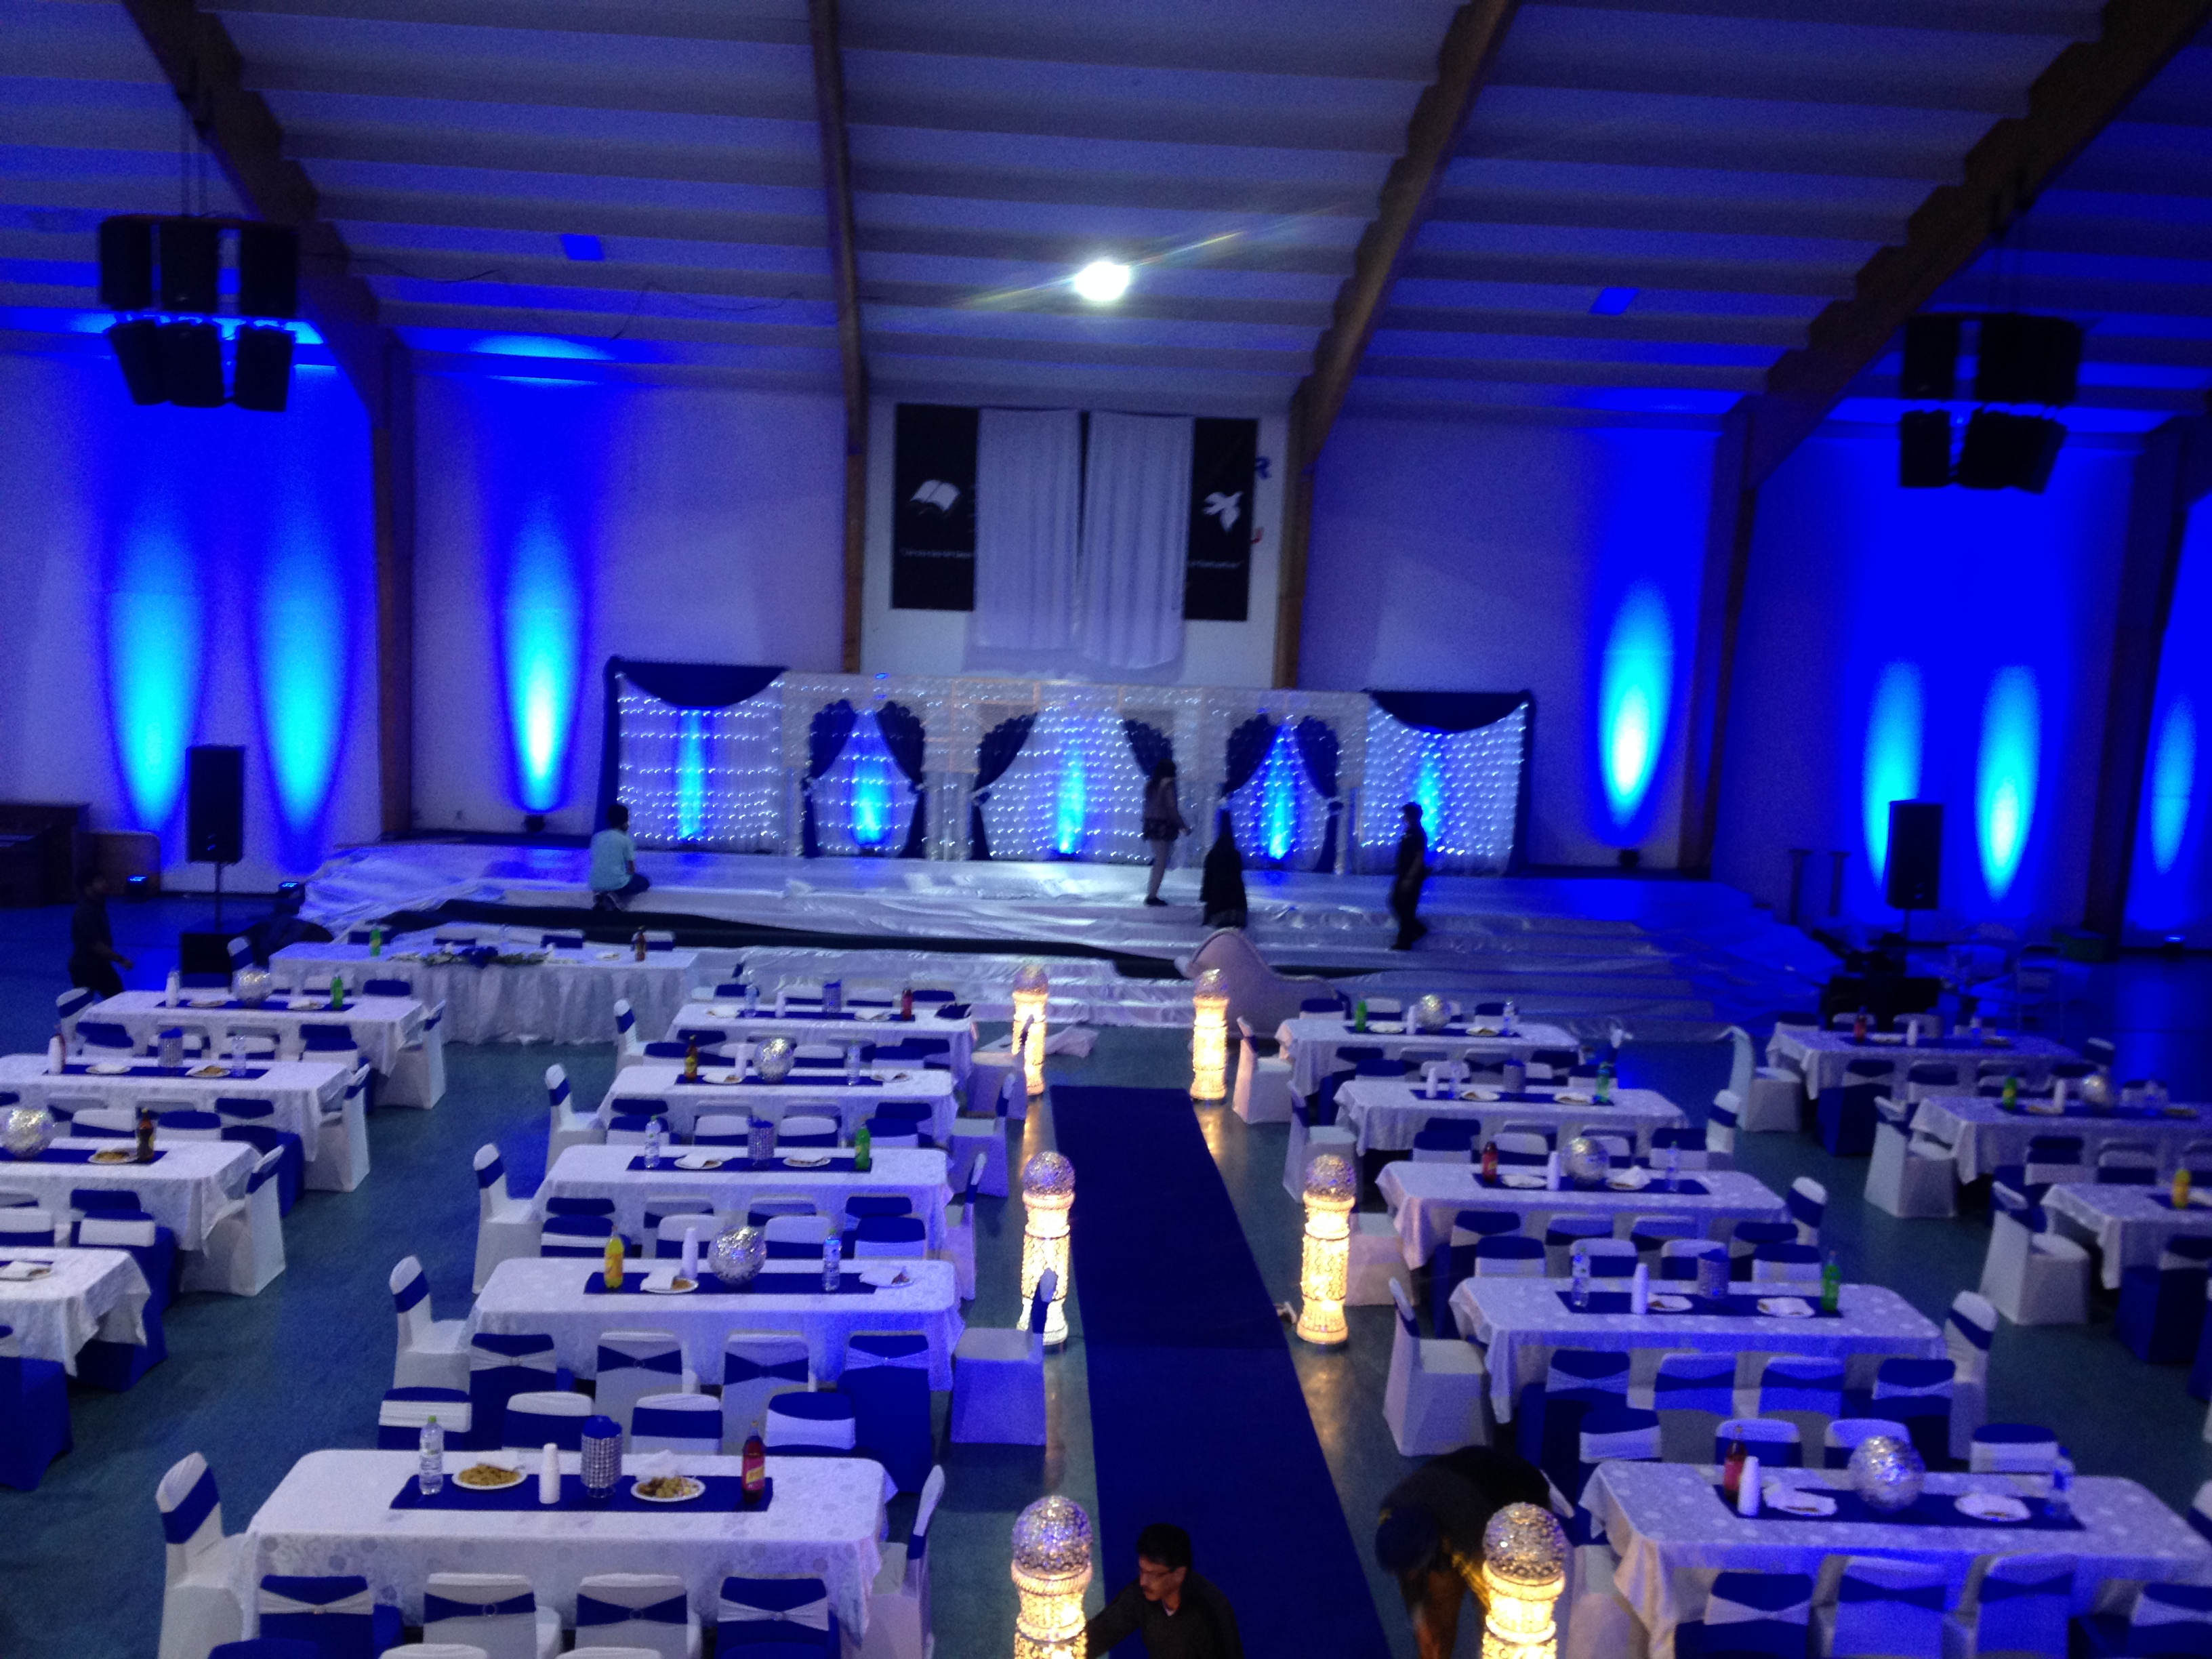 Ambiance Lighting & Best Wedding u0026 Party Equipment Hire Best Prices| Events Auckland azcodes.com